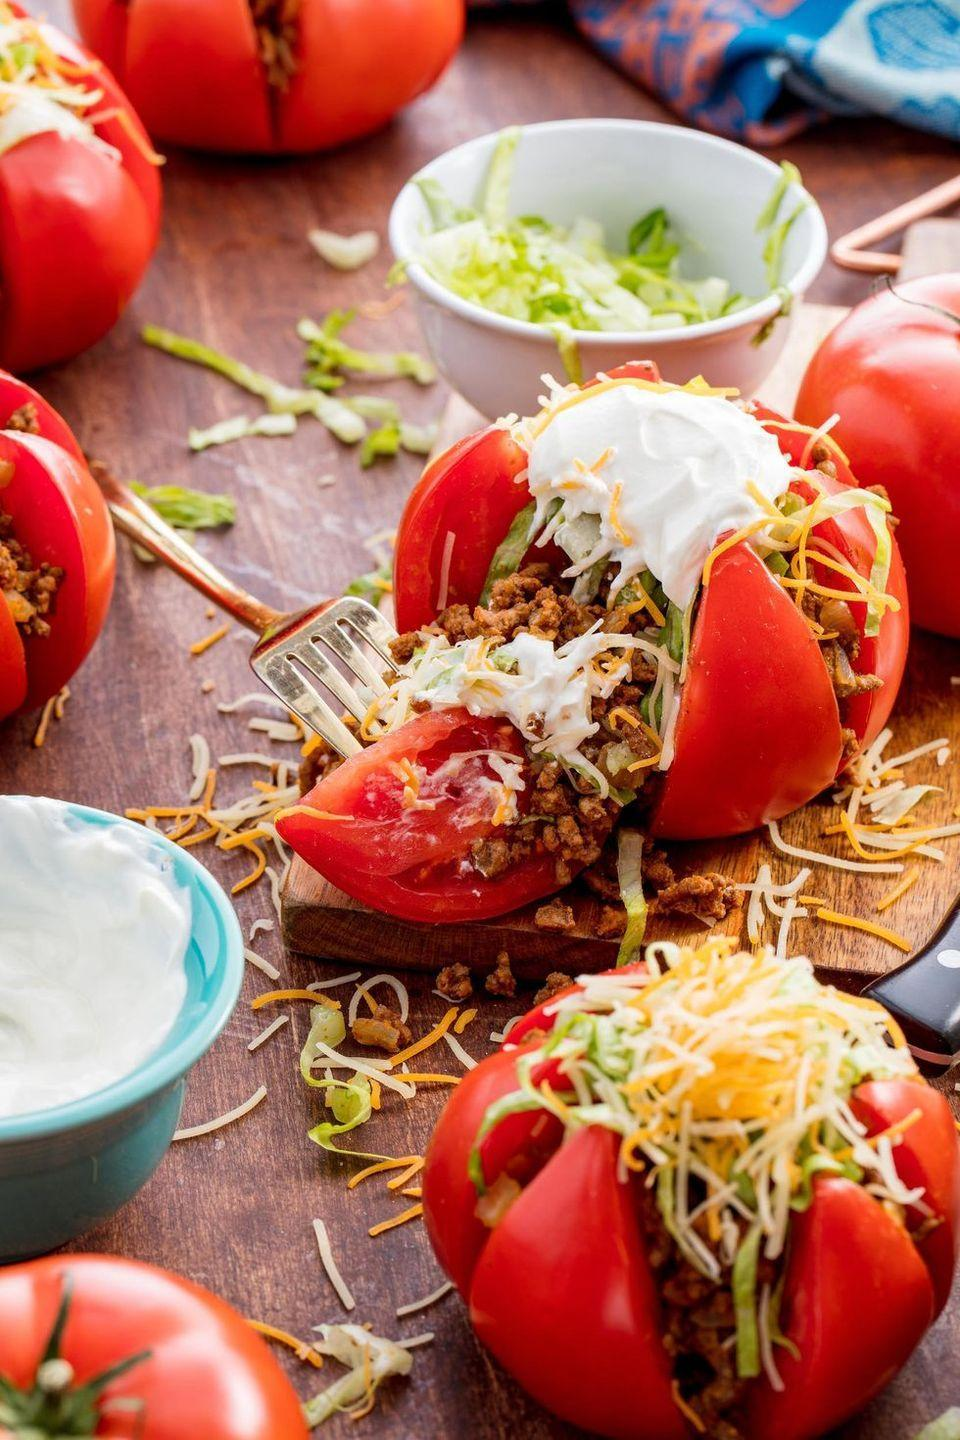 """<p>We're all for a genius low-carb hack — and these tomatoes totally deliver. We had never thought to stuff them with taco meat, cheese, and sour cream, but we'll do anything in the name of ditching a tortilla for a low-carb meal.</p><p>Get the <a href=""""https://www.delish.com/uk/cooking/recipes/a30053026/taco-tomatoes-recipe/"""" rel=""""nofollow noopener"""" target=""""_blank"""" data-ylk=""""slk:Taco Tomatoes"""" class=""""link rapid-noclick-resp"""">Taco Tomatoes</a> recipe.</p>"""